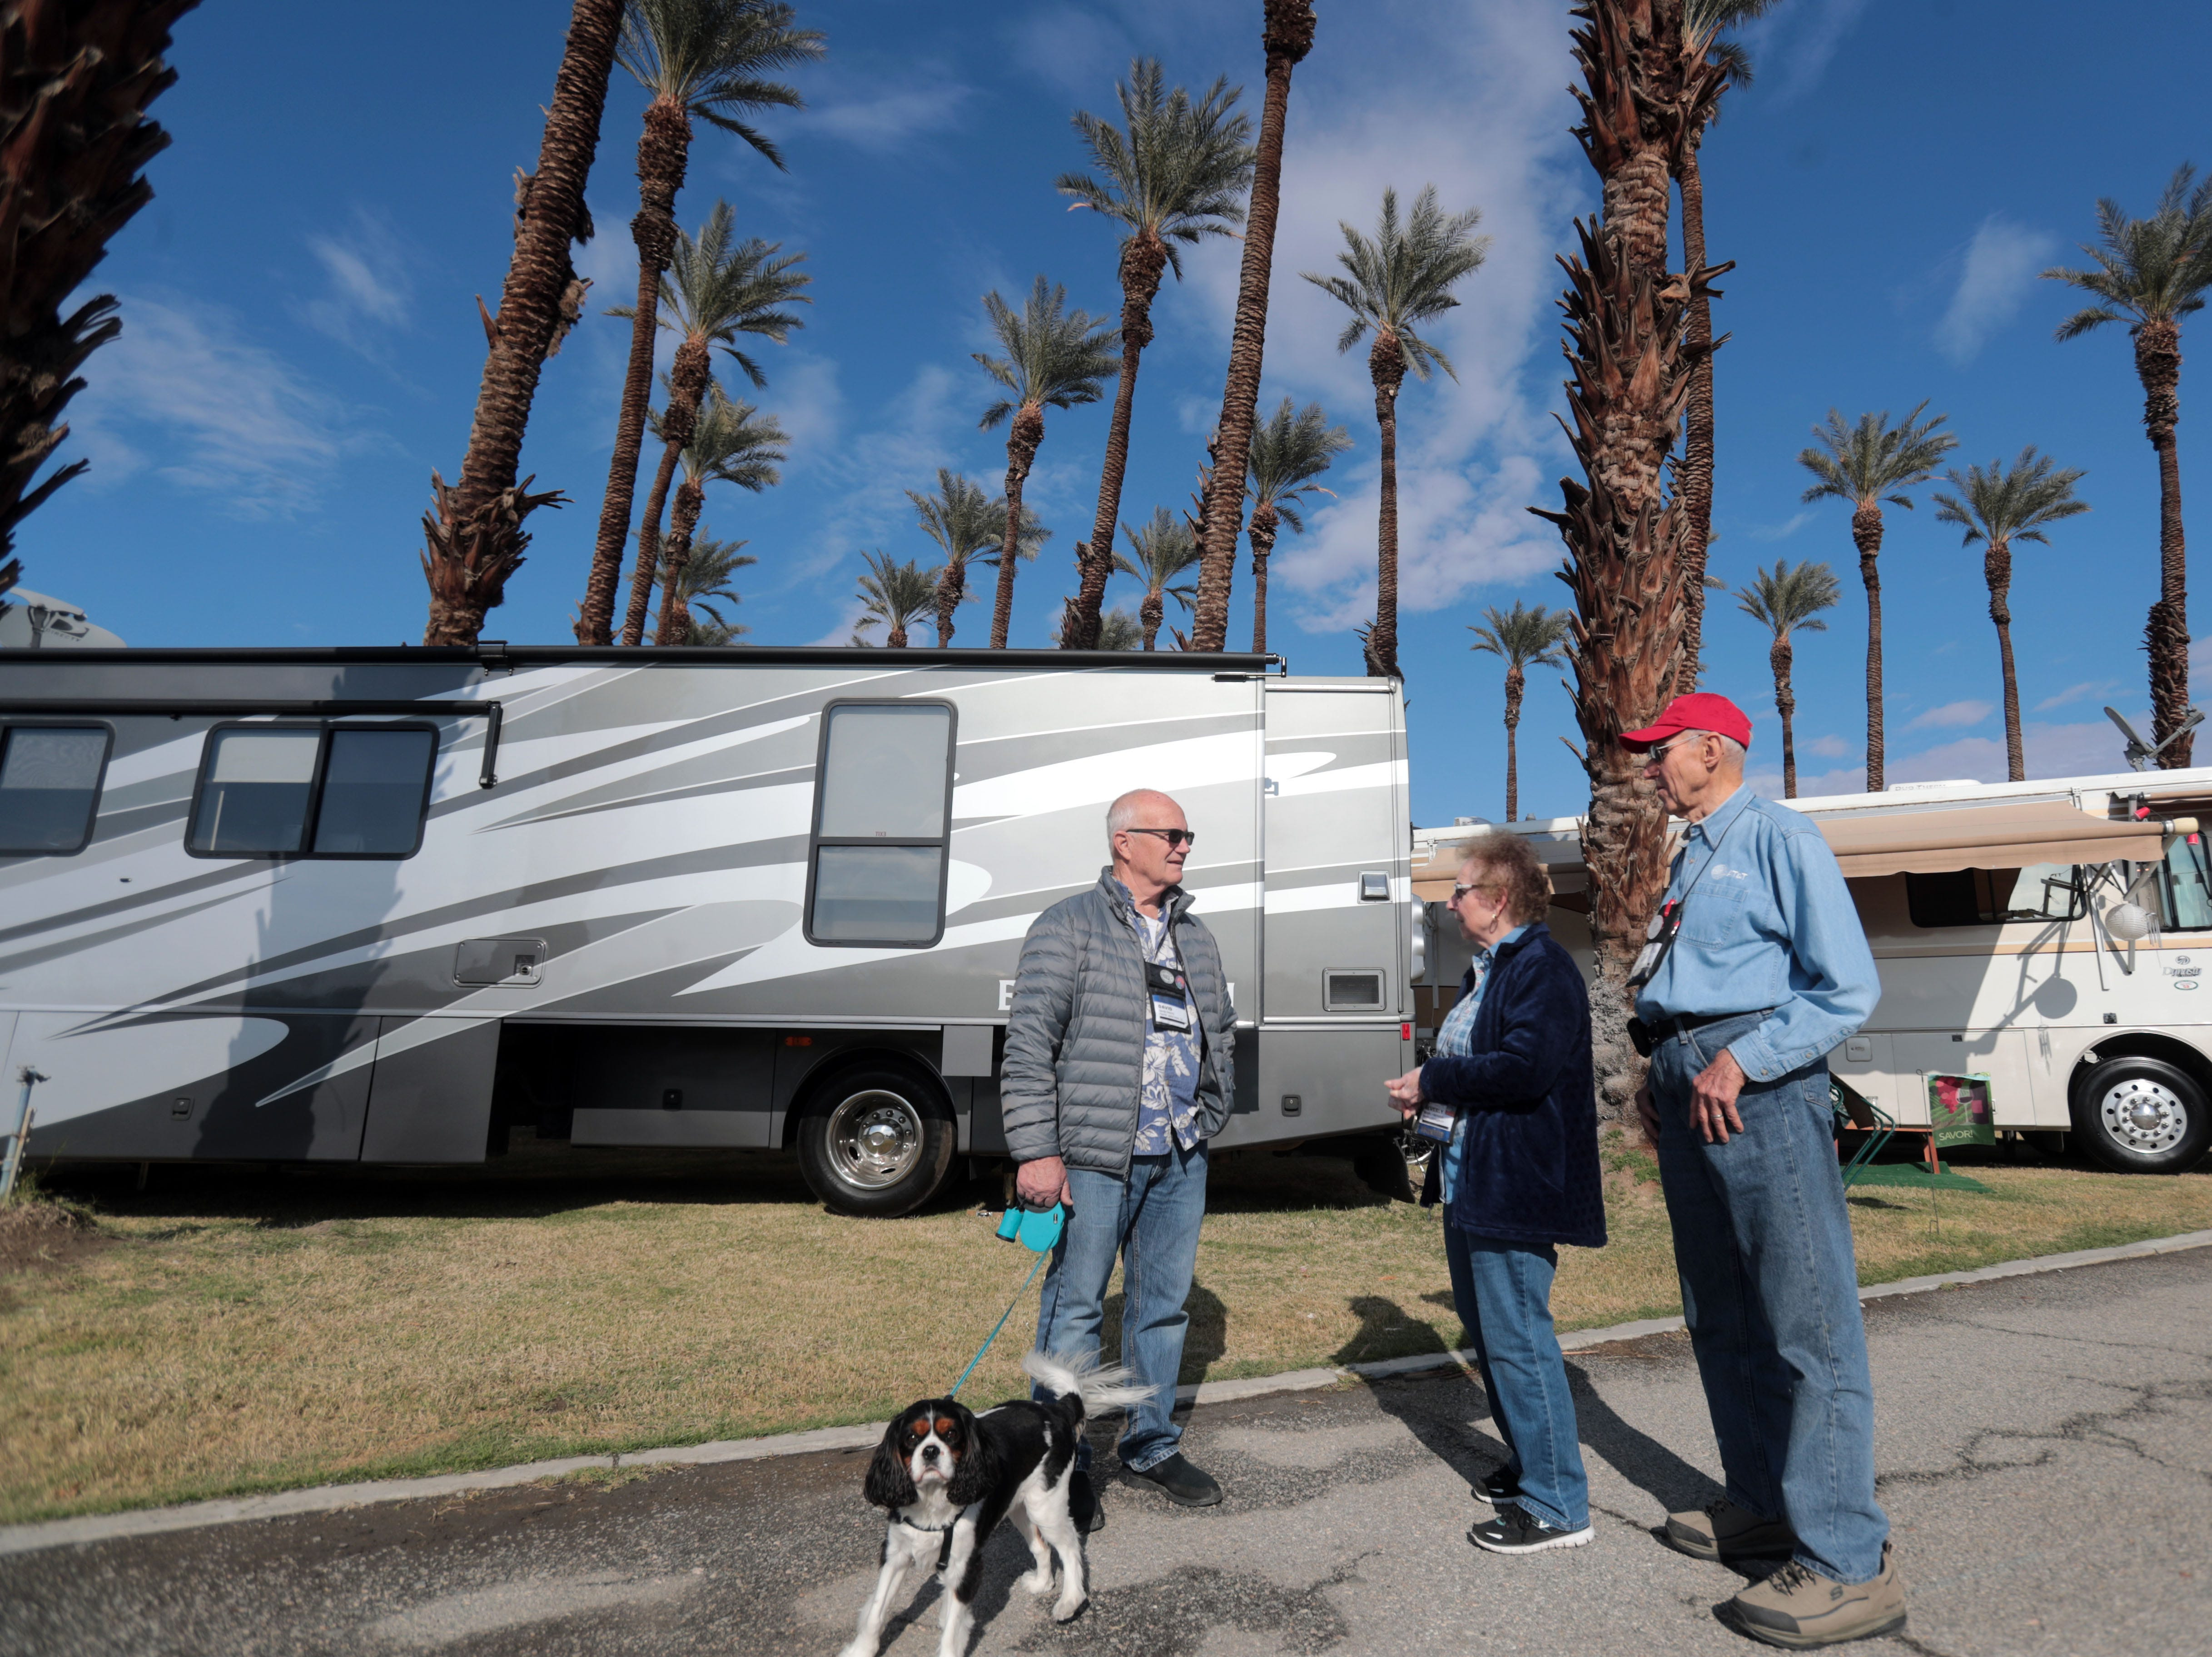 David Photo, left, of Santa Rosa, CA chats with Herb and Beverly Weinman, of Los Gatos, CA at Riverside County Fairgrounds in Indio on Saturday, January 12, 2019, during the FMCA annual motorhome convention.